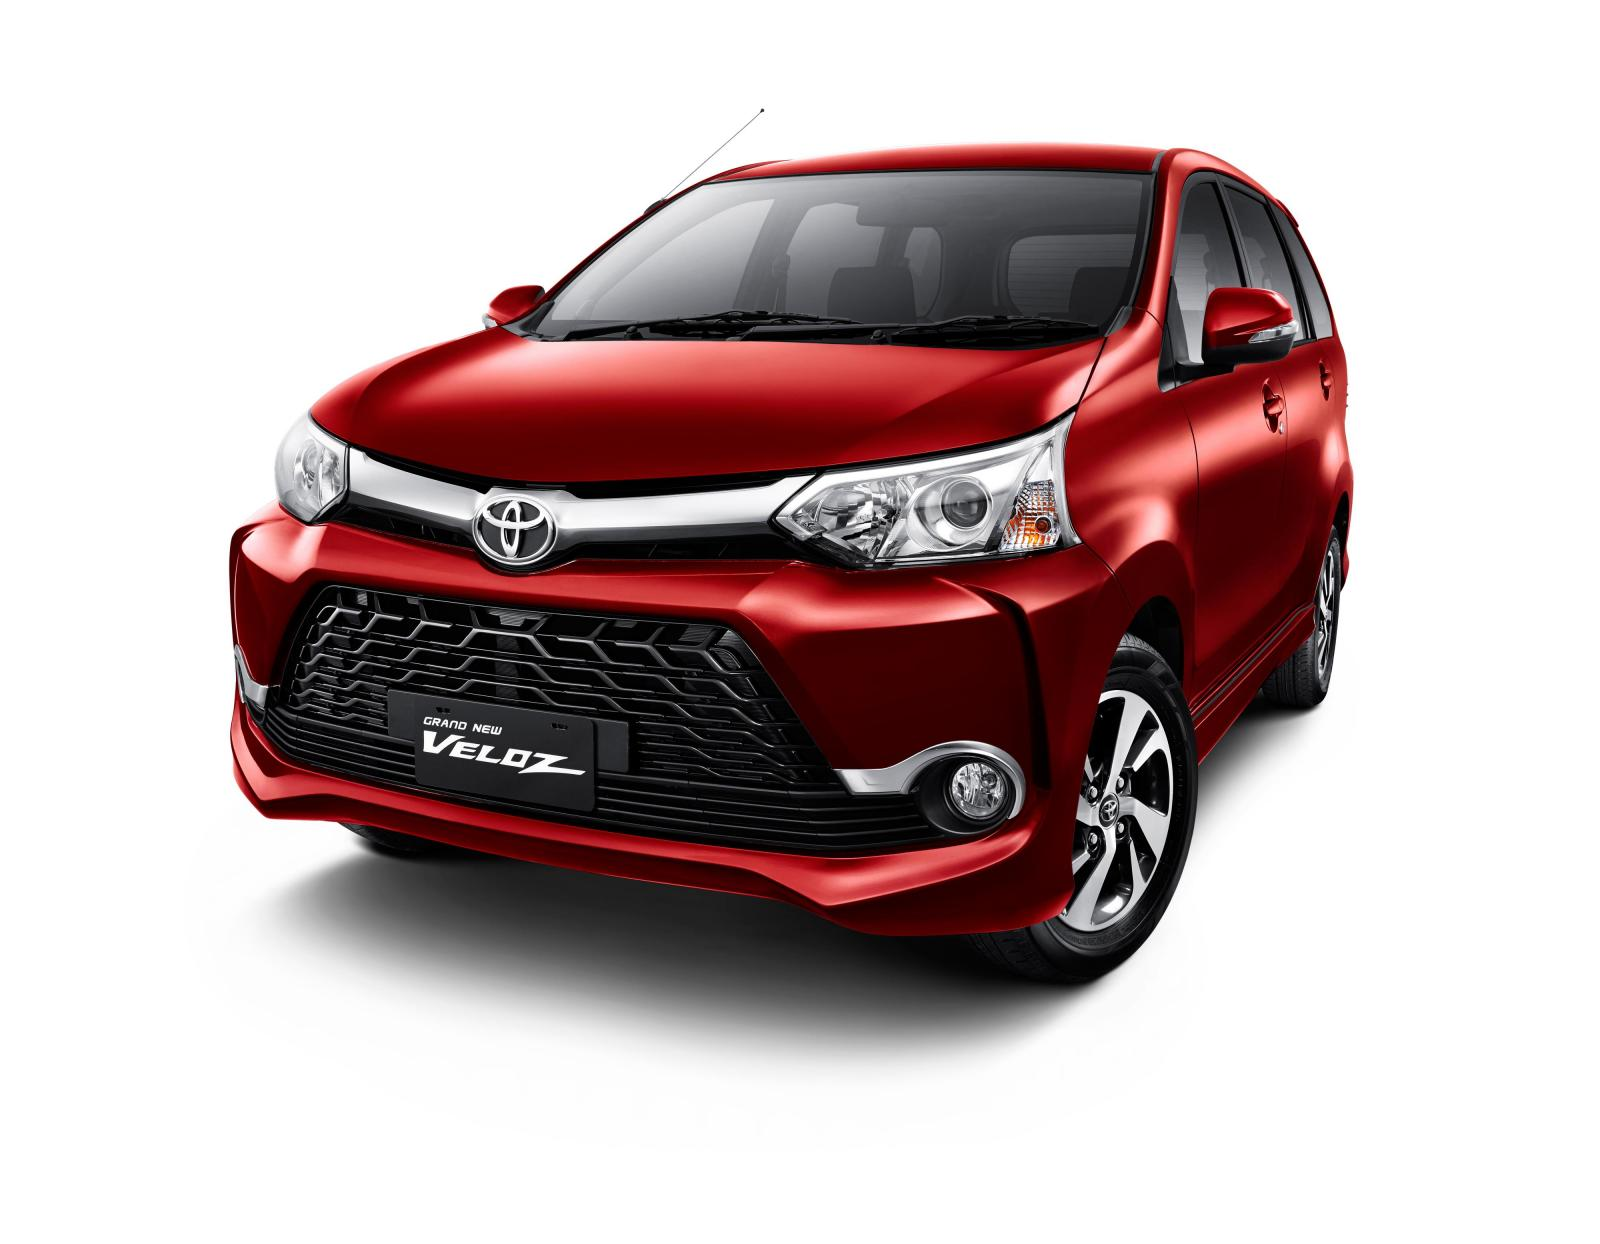 Grand New Toyota Avanza Veloz 2015 berwarna merah